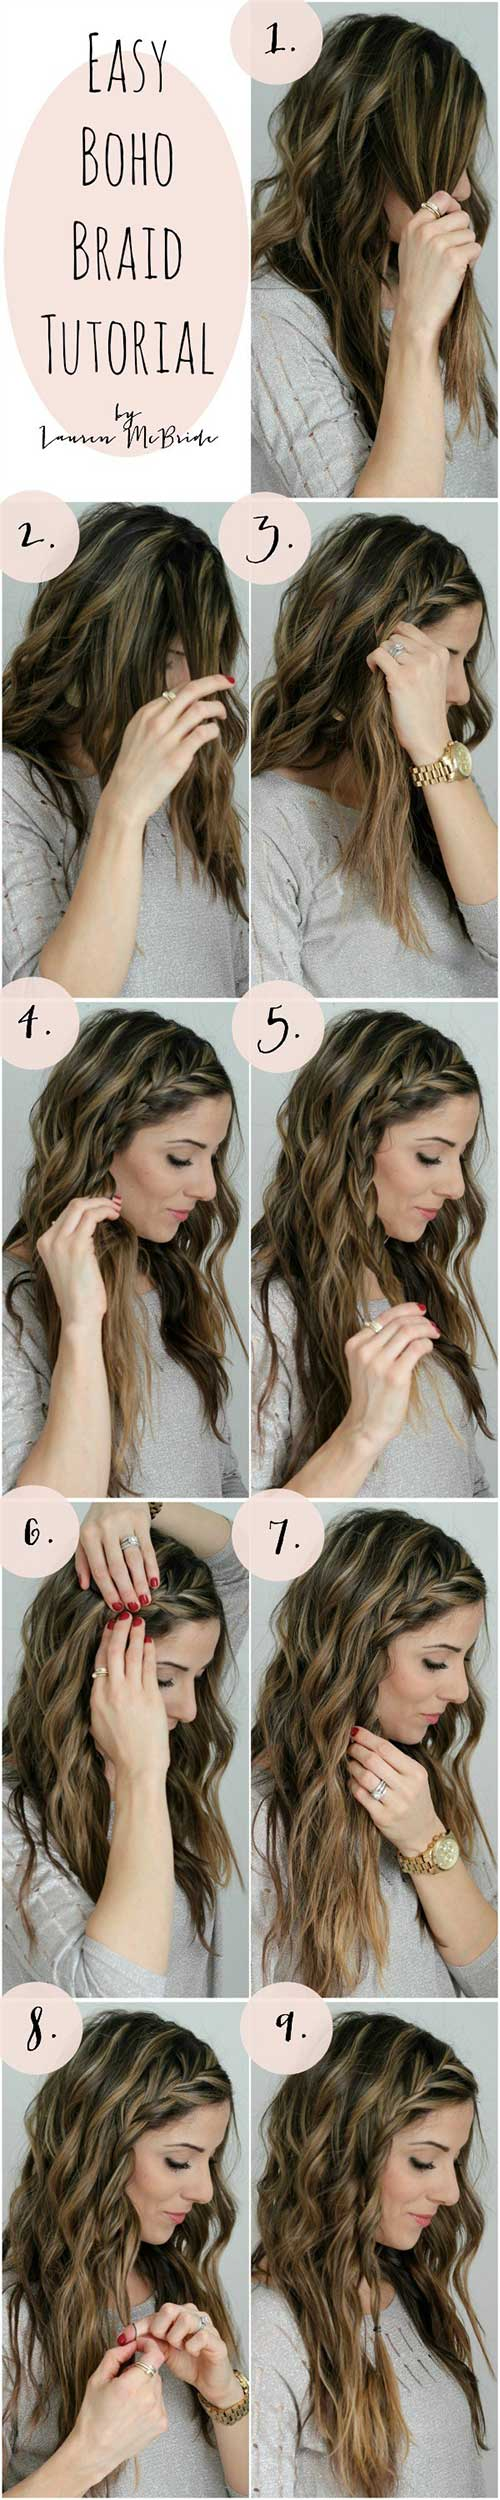 Amazing 7. Easy Boho Braid